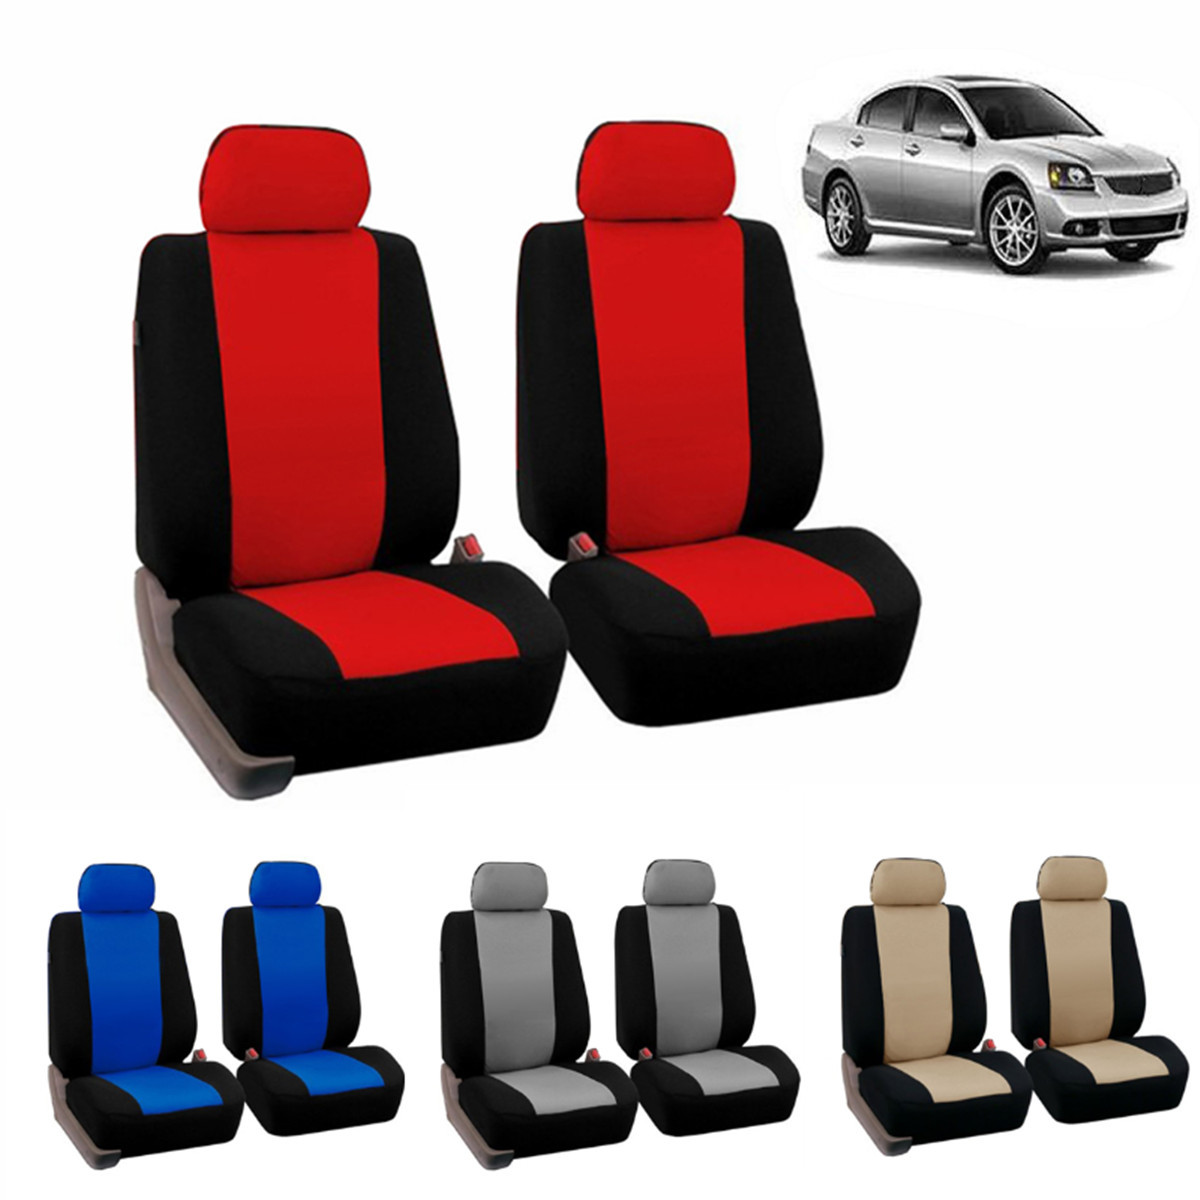 2xUniversal Car Auto Seat Cover Covers Polyester For Cars For Trucks For Vans For SUV Beige/Blue/Red/Gray Automobiles Seat Cover